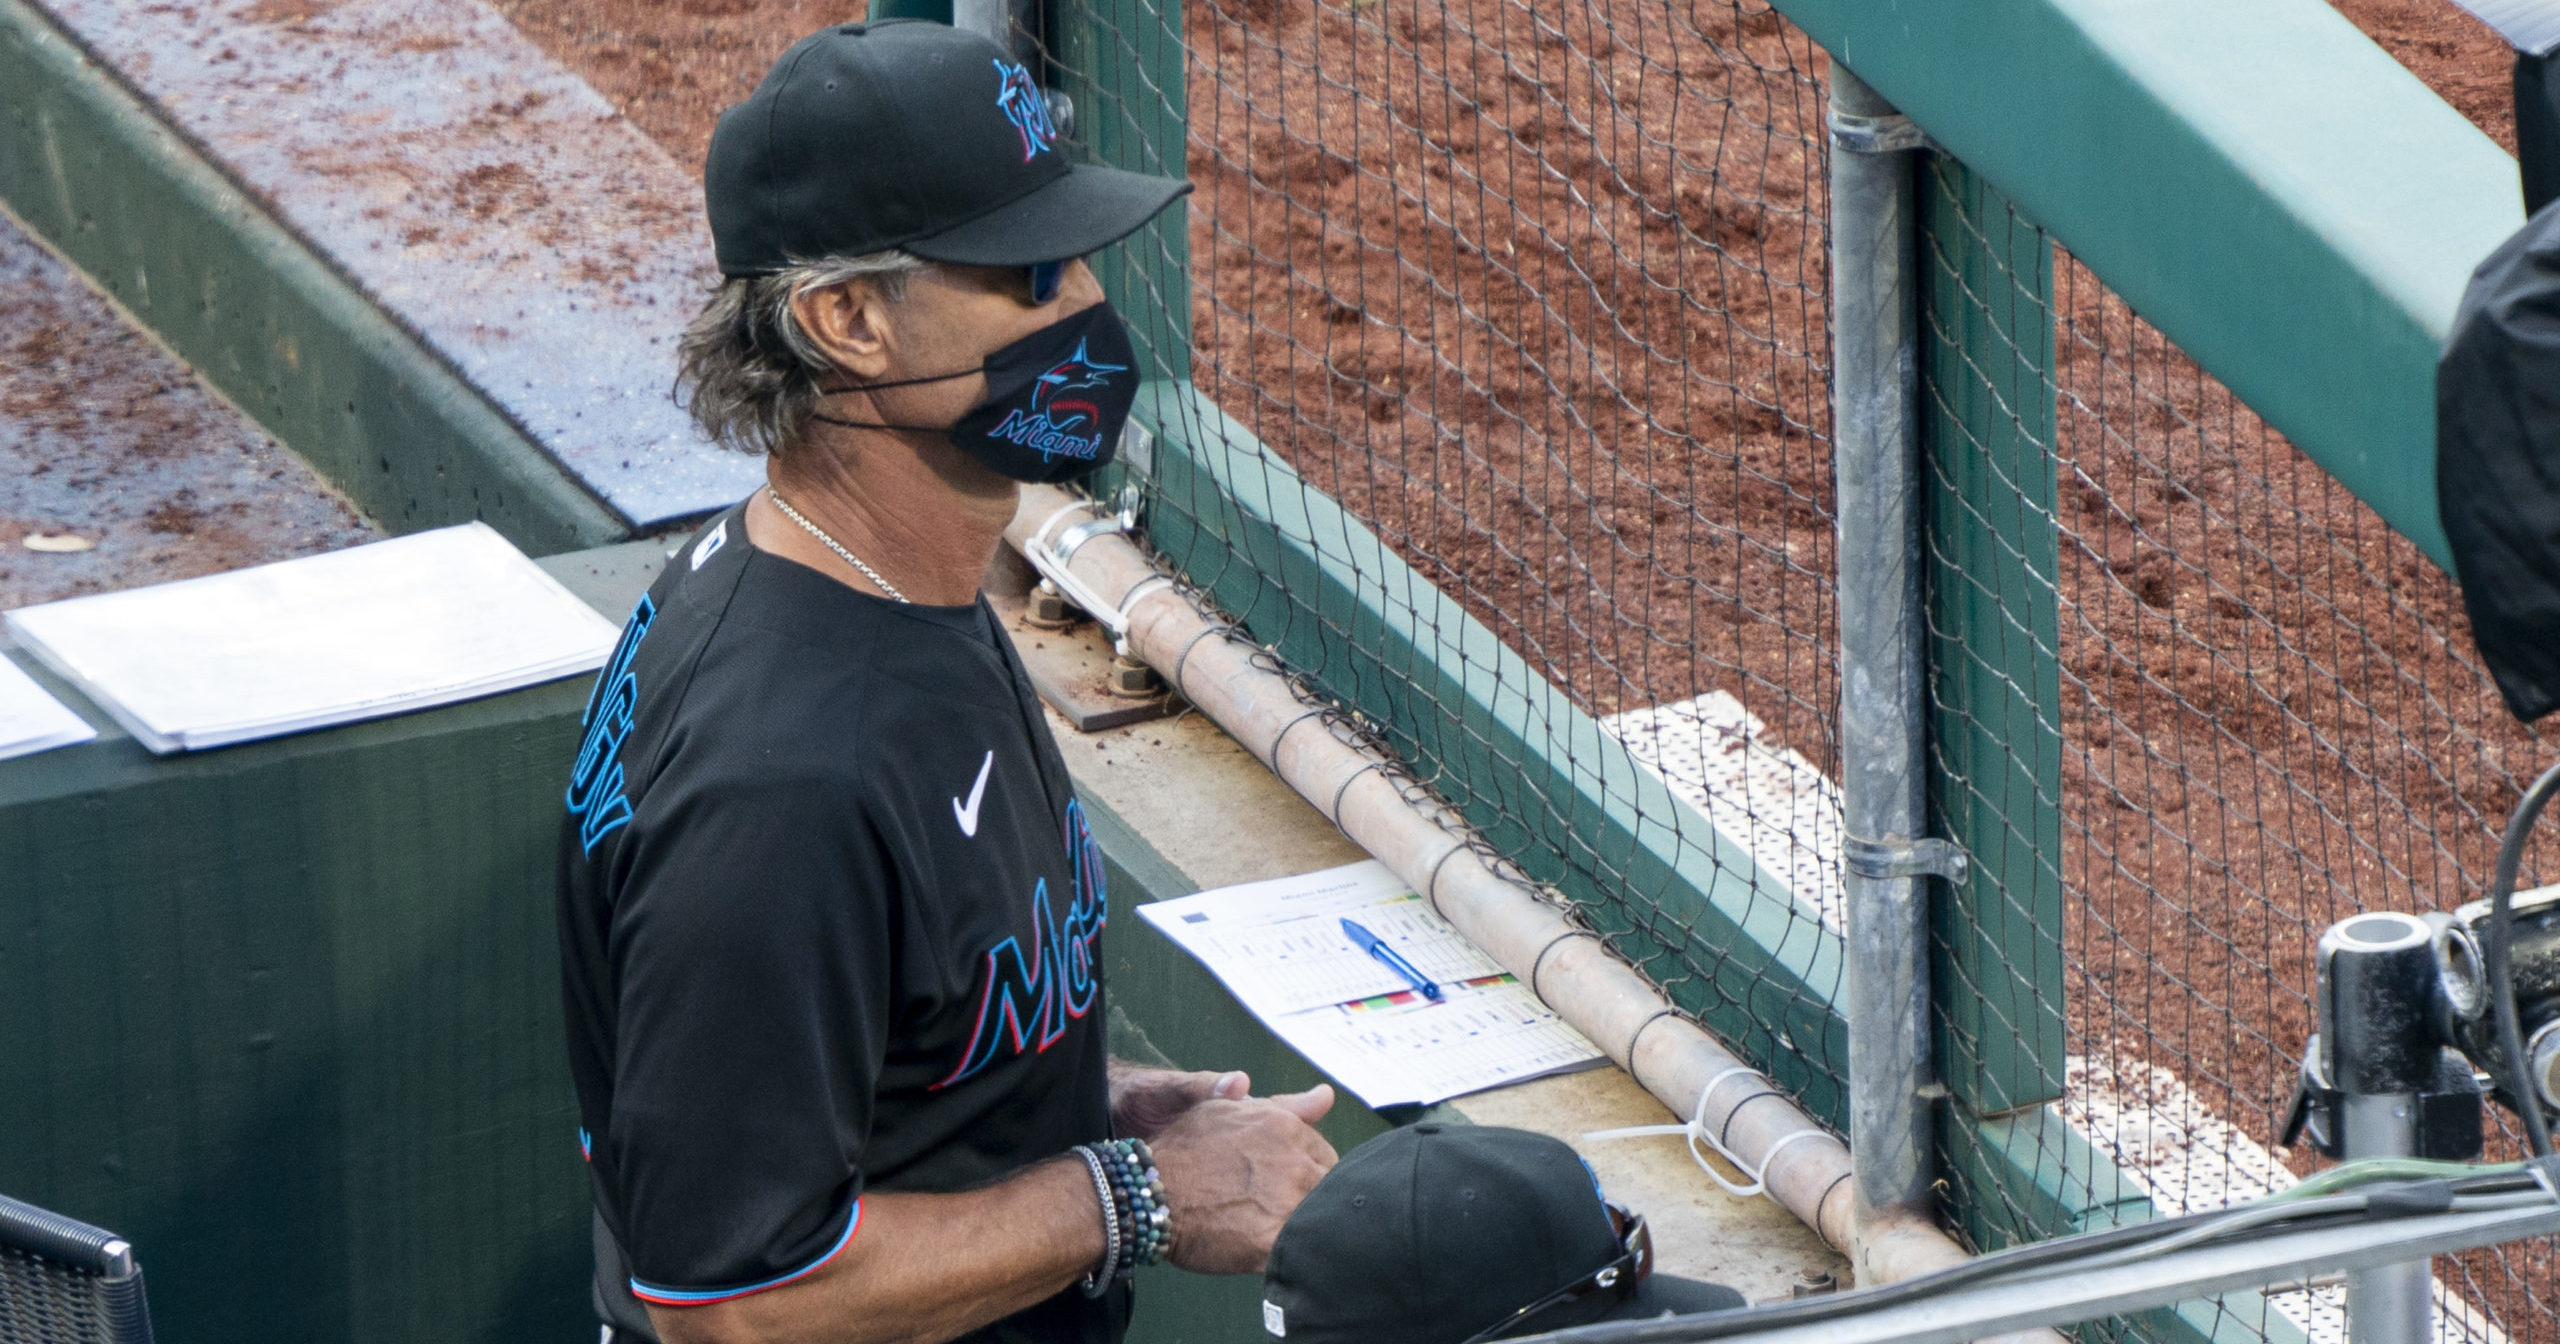 Miami Marlins manager Don Mattingly looks out from the dugout during the eighth inning of a game against the Philadelphia Phillies at Citizens Bank Park on July 25, 2020.